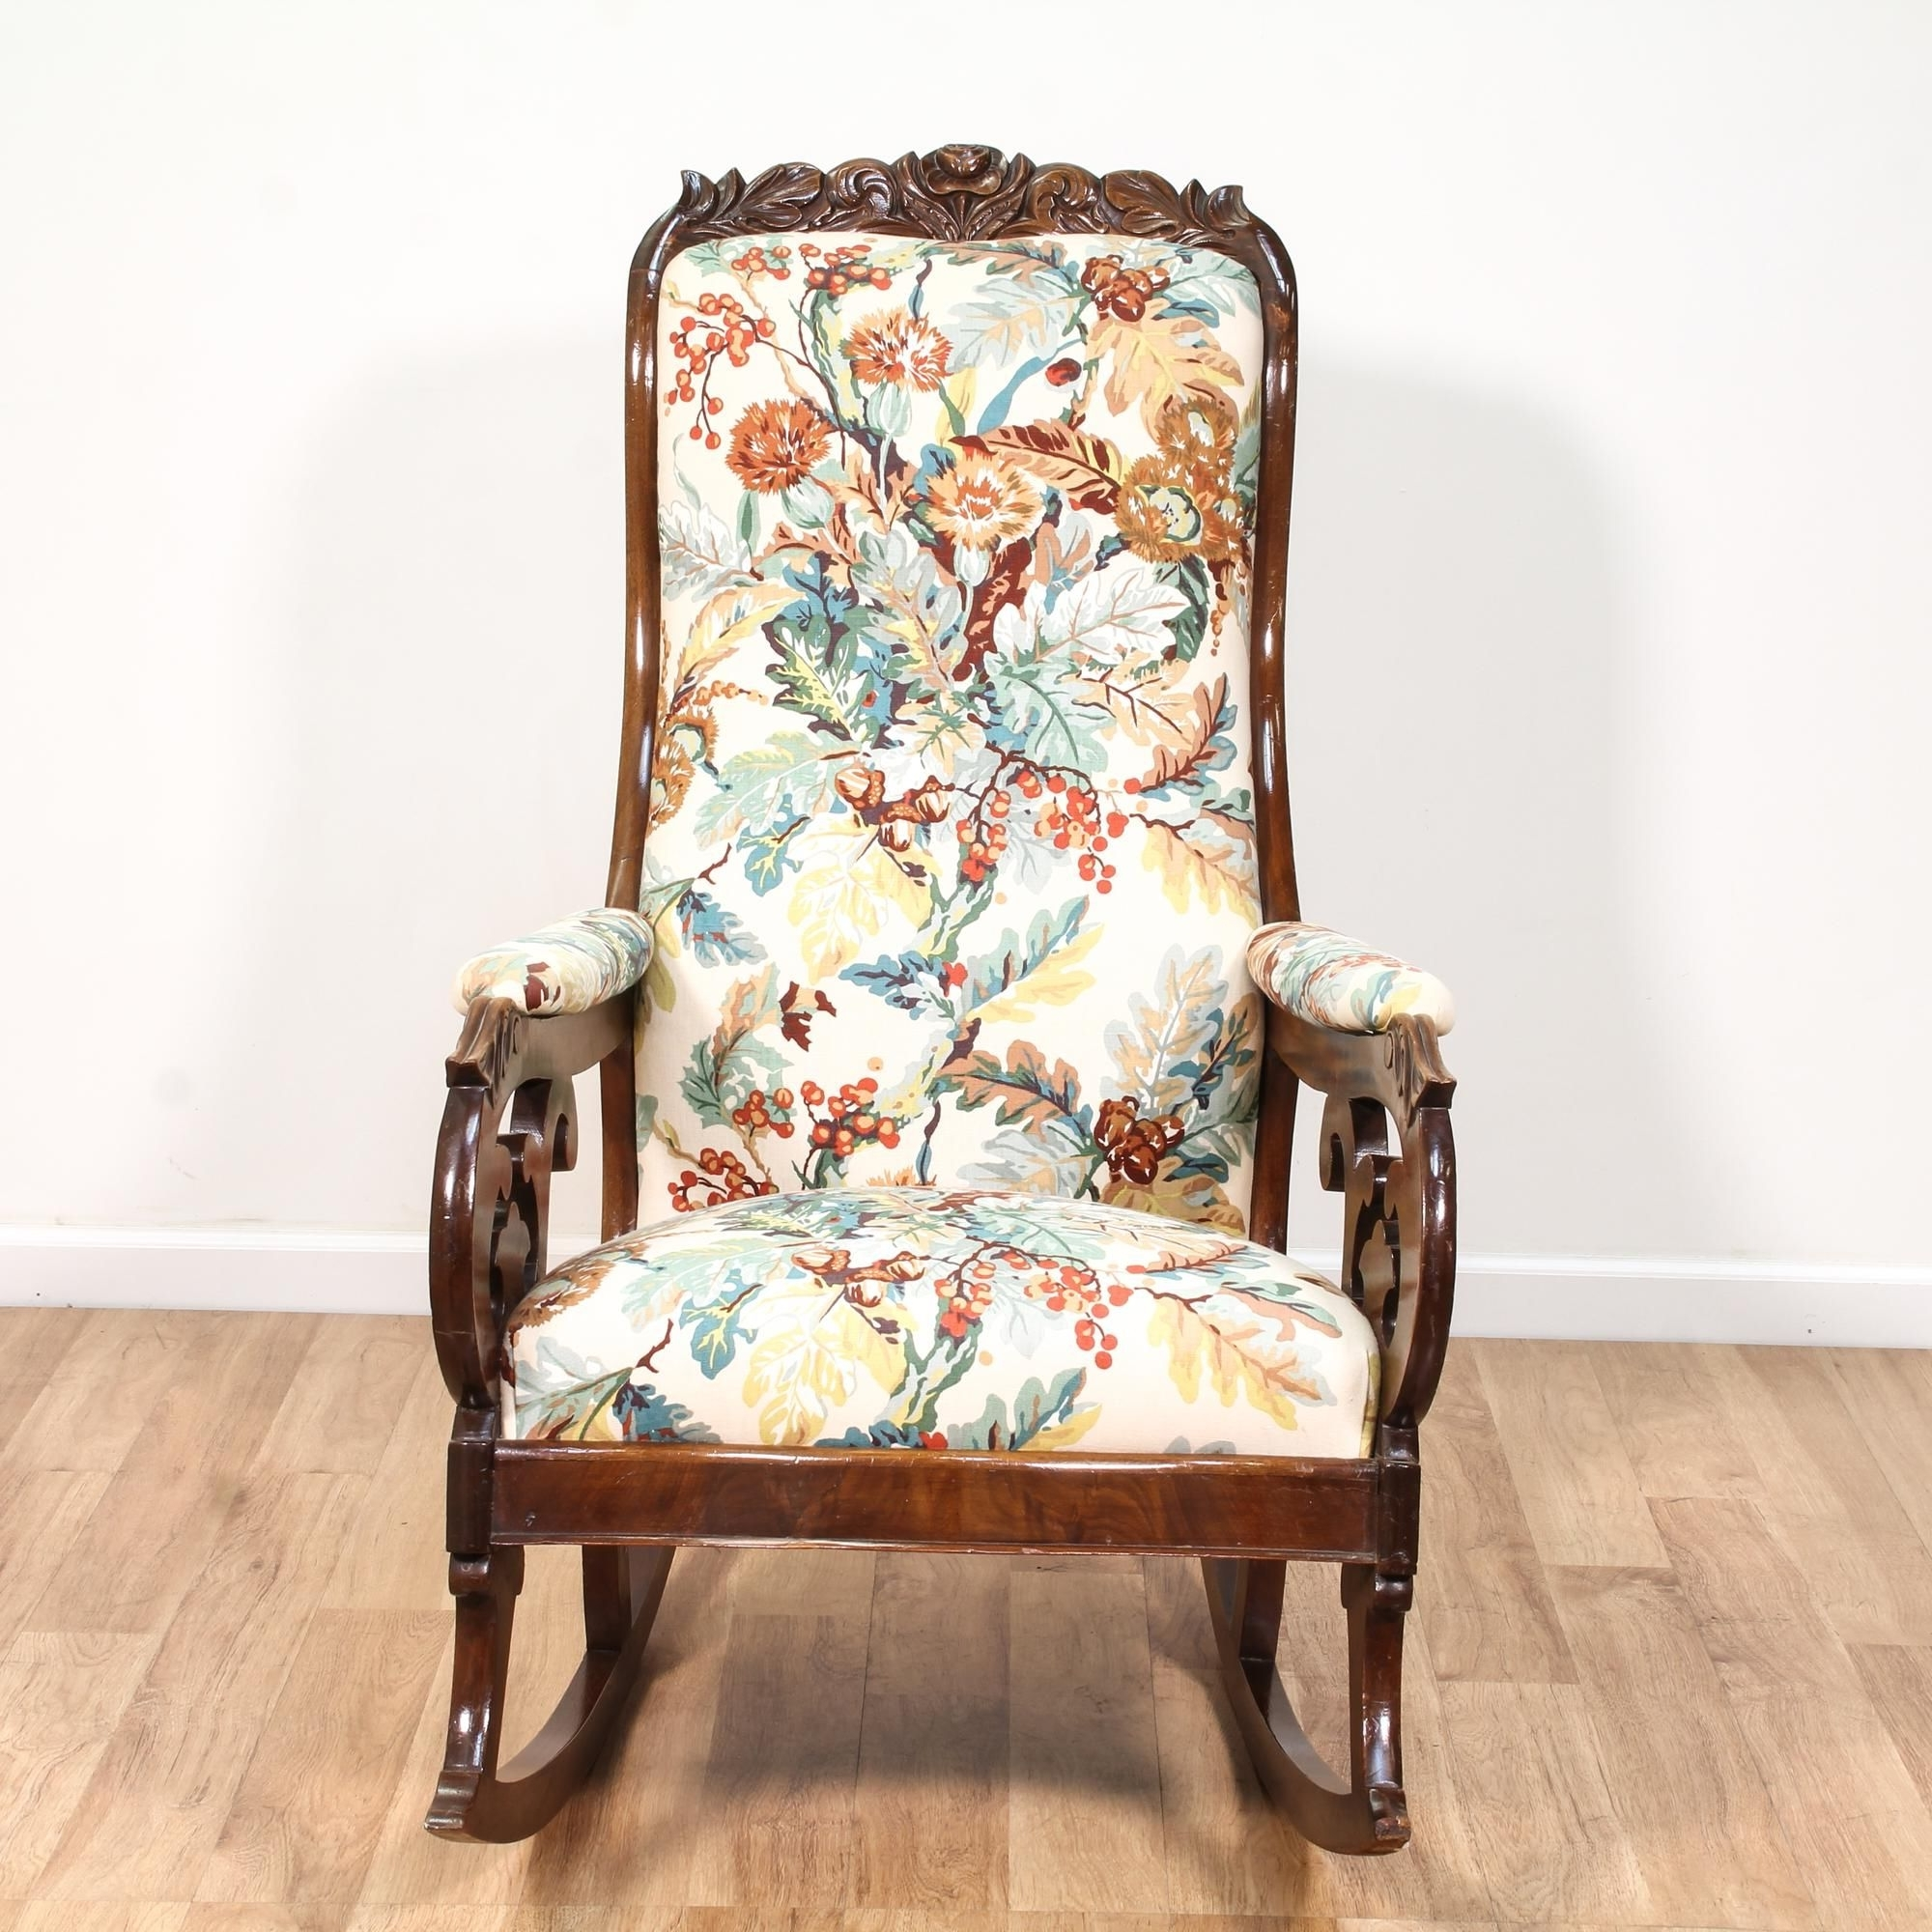 Victorian Rocking Chairs For Recent This Victorian Rocking Chair Is Featured In A Solid Wood With A (View 16 of 20)